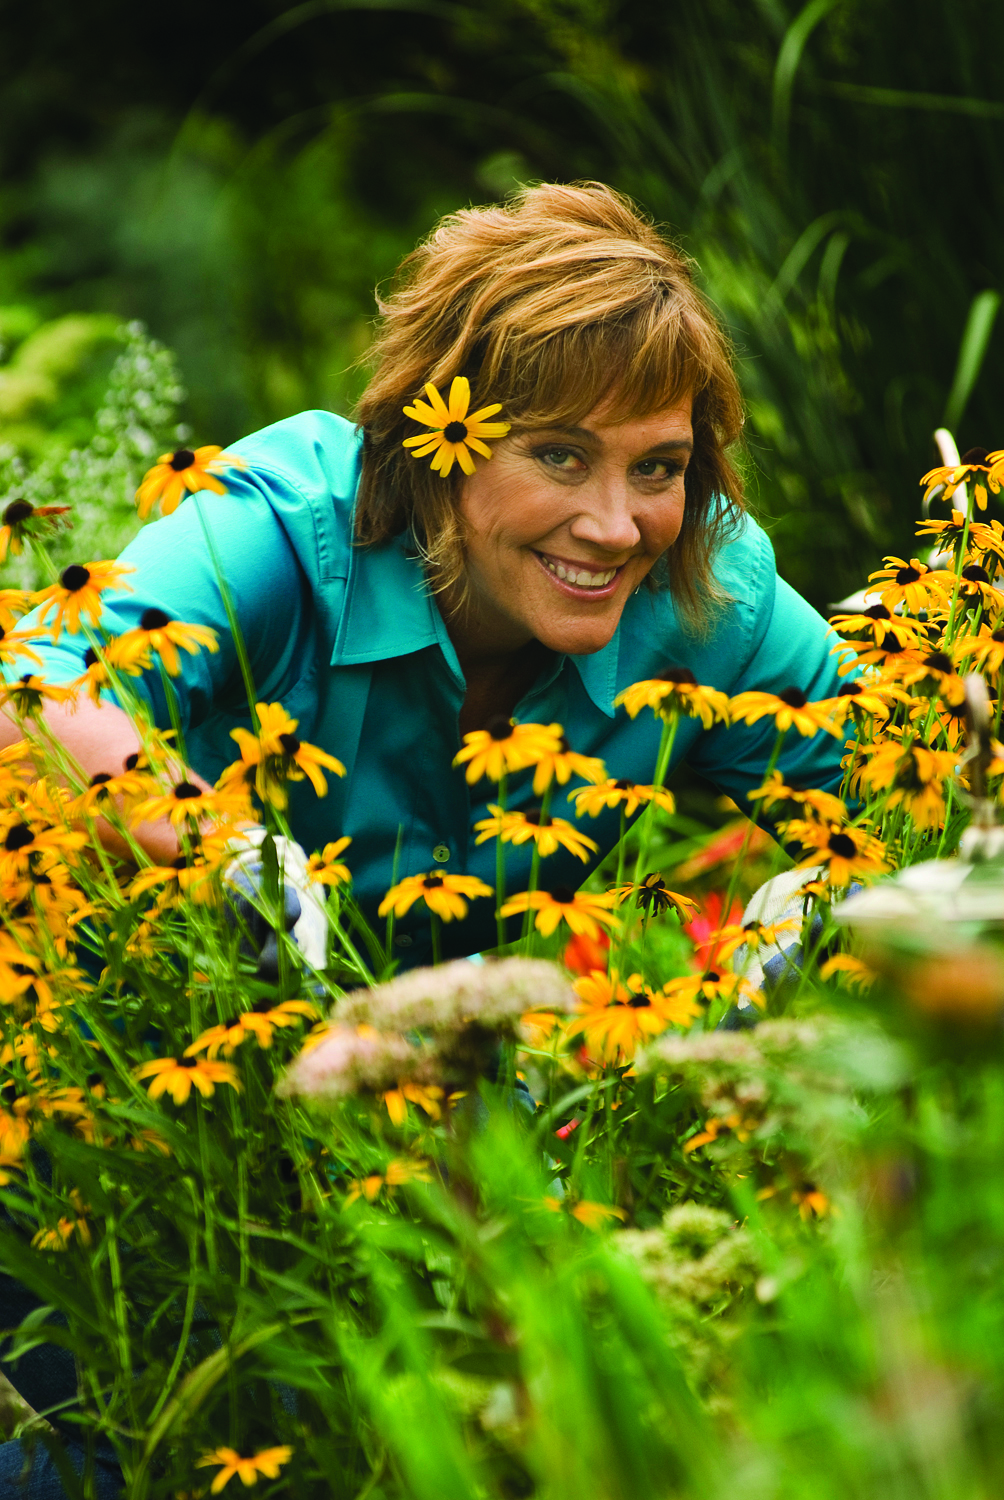 Melinda Myers, Gardening Expert, To Appear At St. Louis Home U0026 Garden ShowMelinda  Myers, Gardening Expert